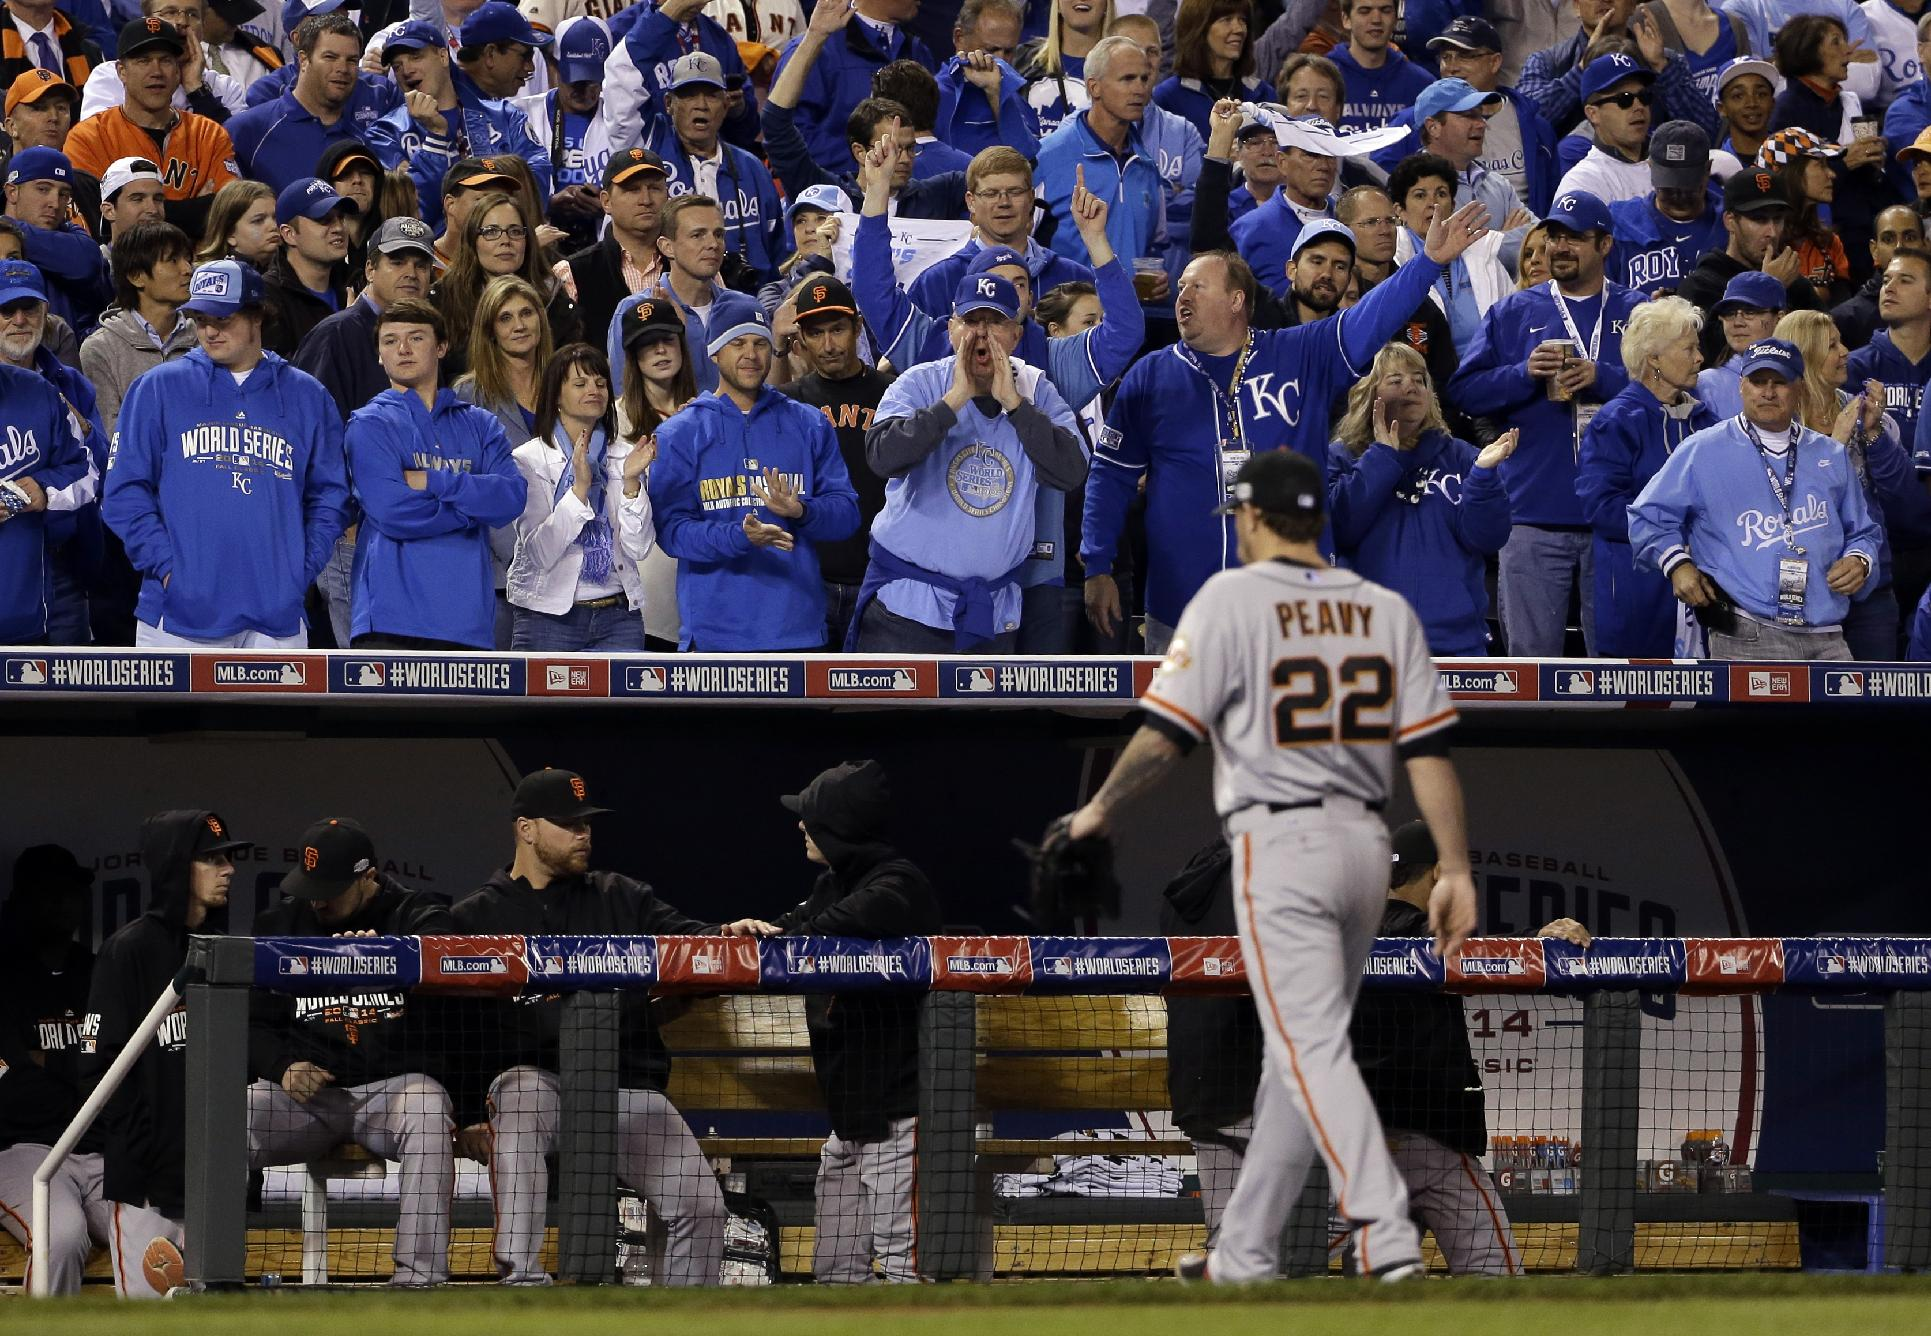 Jake Peavy had an incredibly short outing in Game 6 of the World Series. (AP)